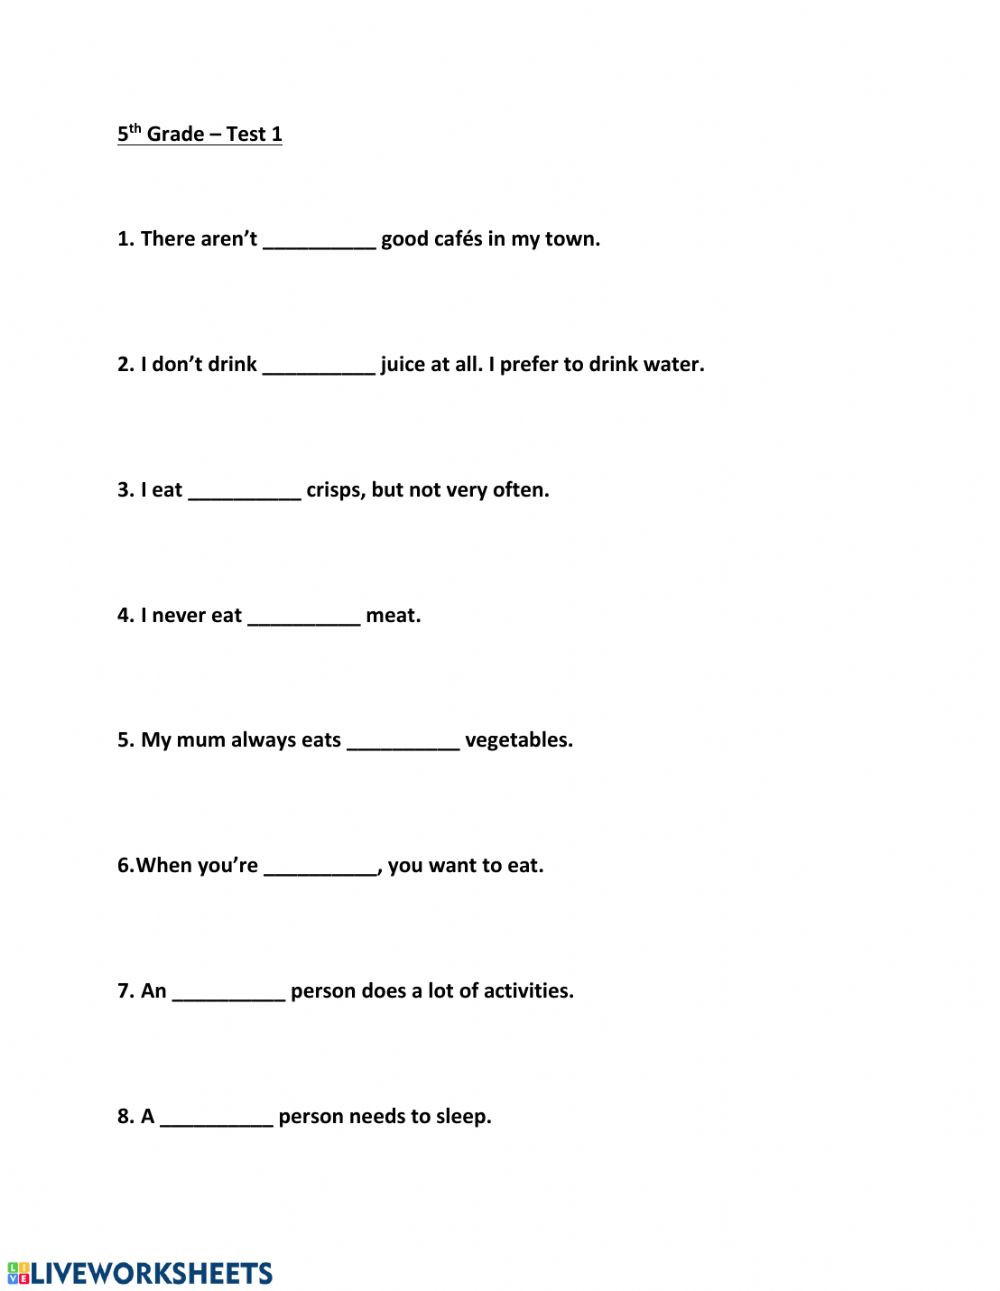 Grammar Worksheet 5th Grade 5th Grade Test 1 Interactive Worksheet